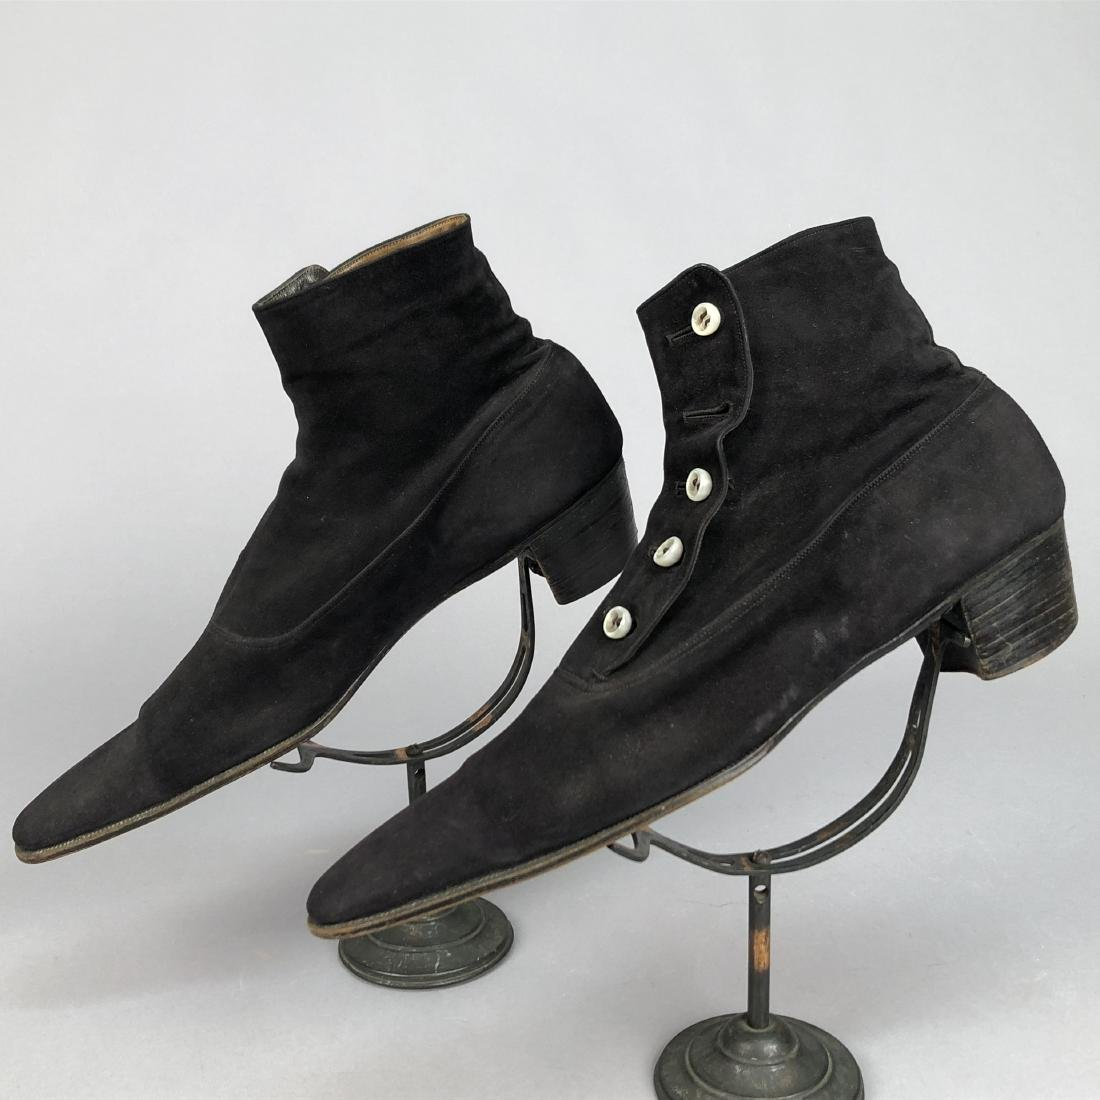 GENT'S SUEDE HIGH BUTTON SHOES, EARLY 20th C. - 2